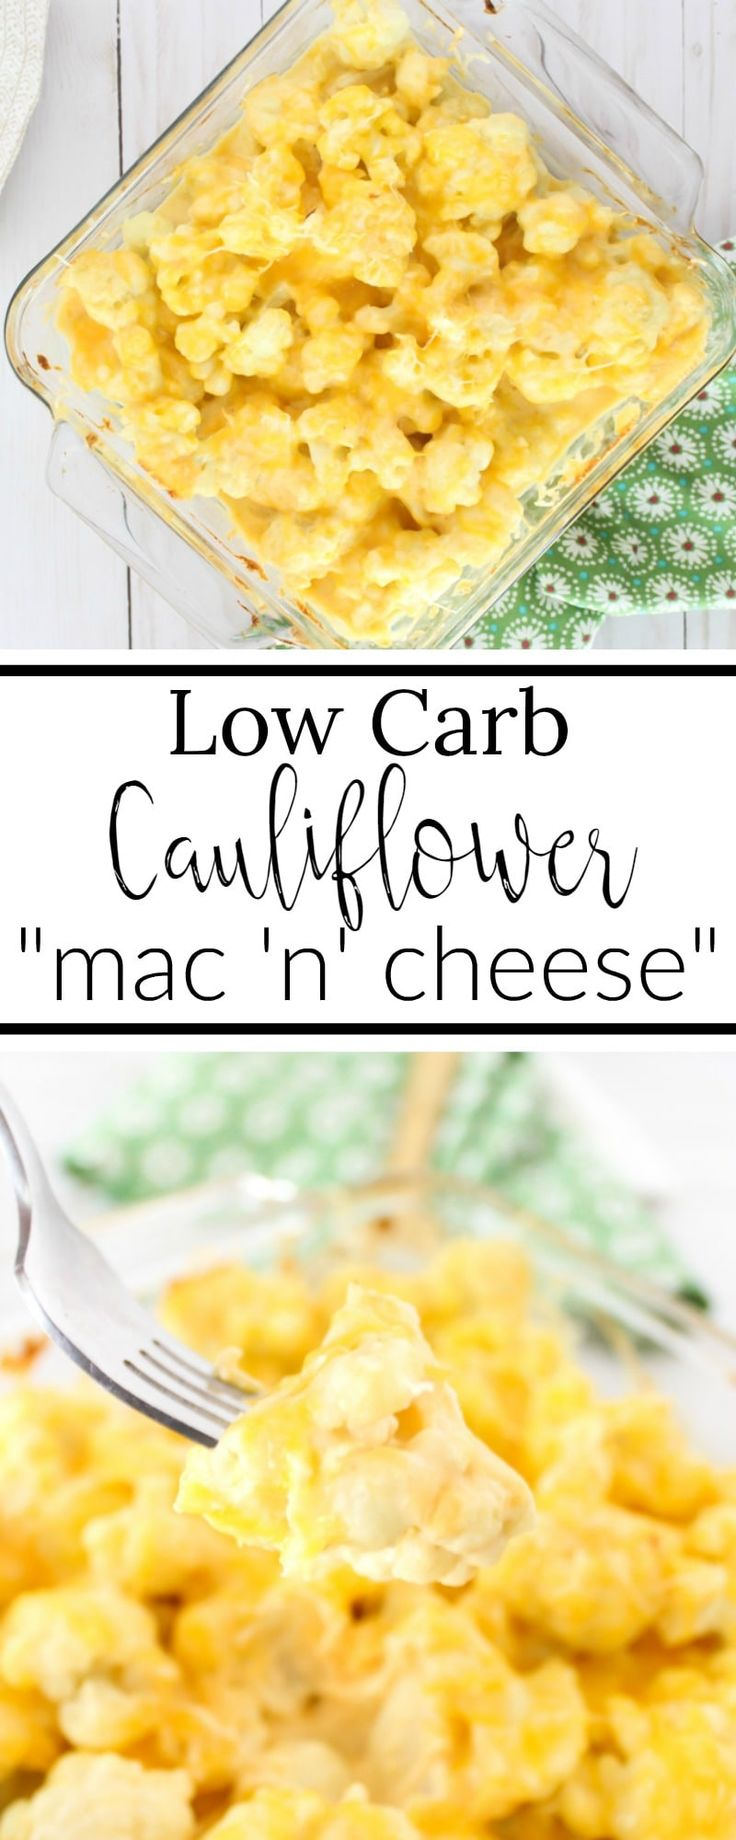 Loaded to the brim with gooey, cheesy goodness, this cheesy cauliflower casserole is the perfect low-carb and keto friendly macaroni and cheese substitute.